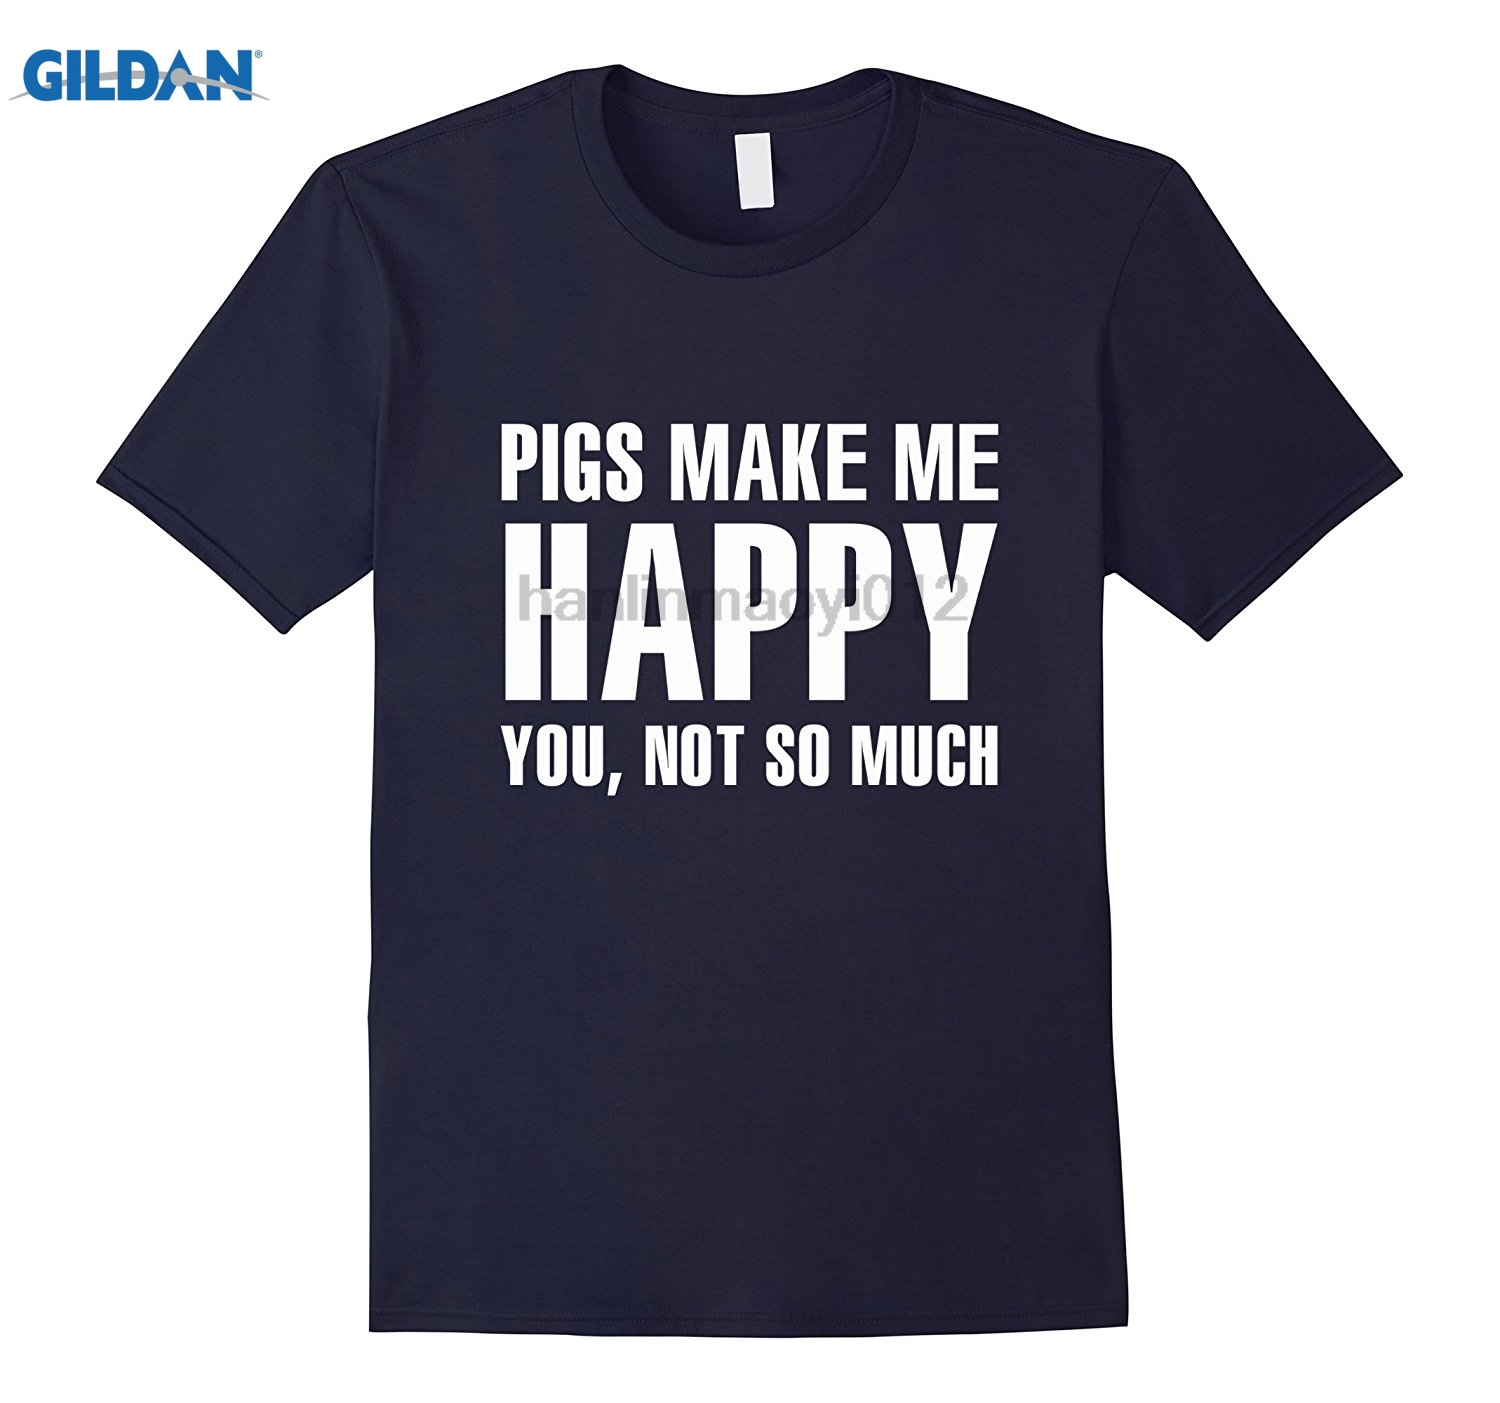 GILDAN Adult pig shirt - Pigs Make Me Happy, You Not So Much Street men new Womens T-shirt